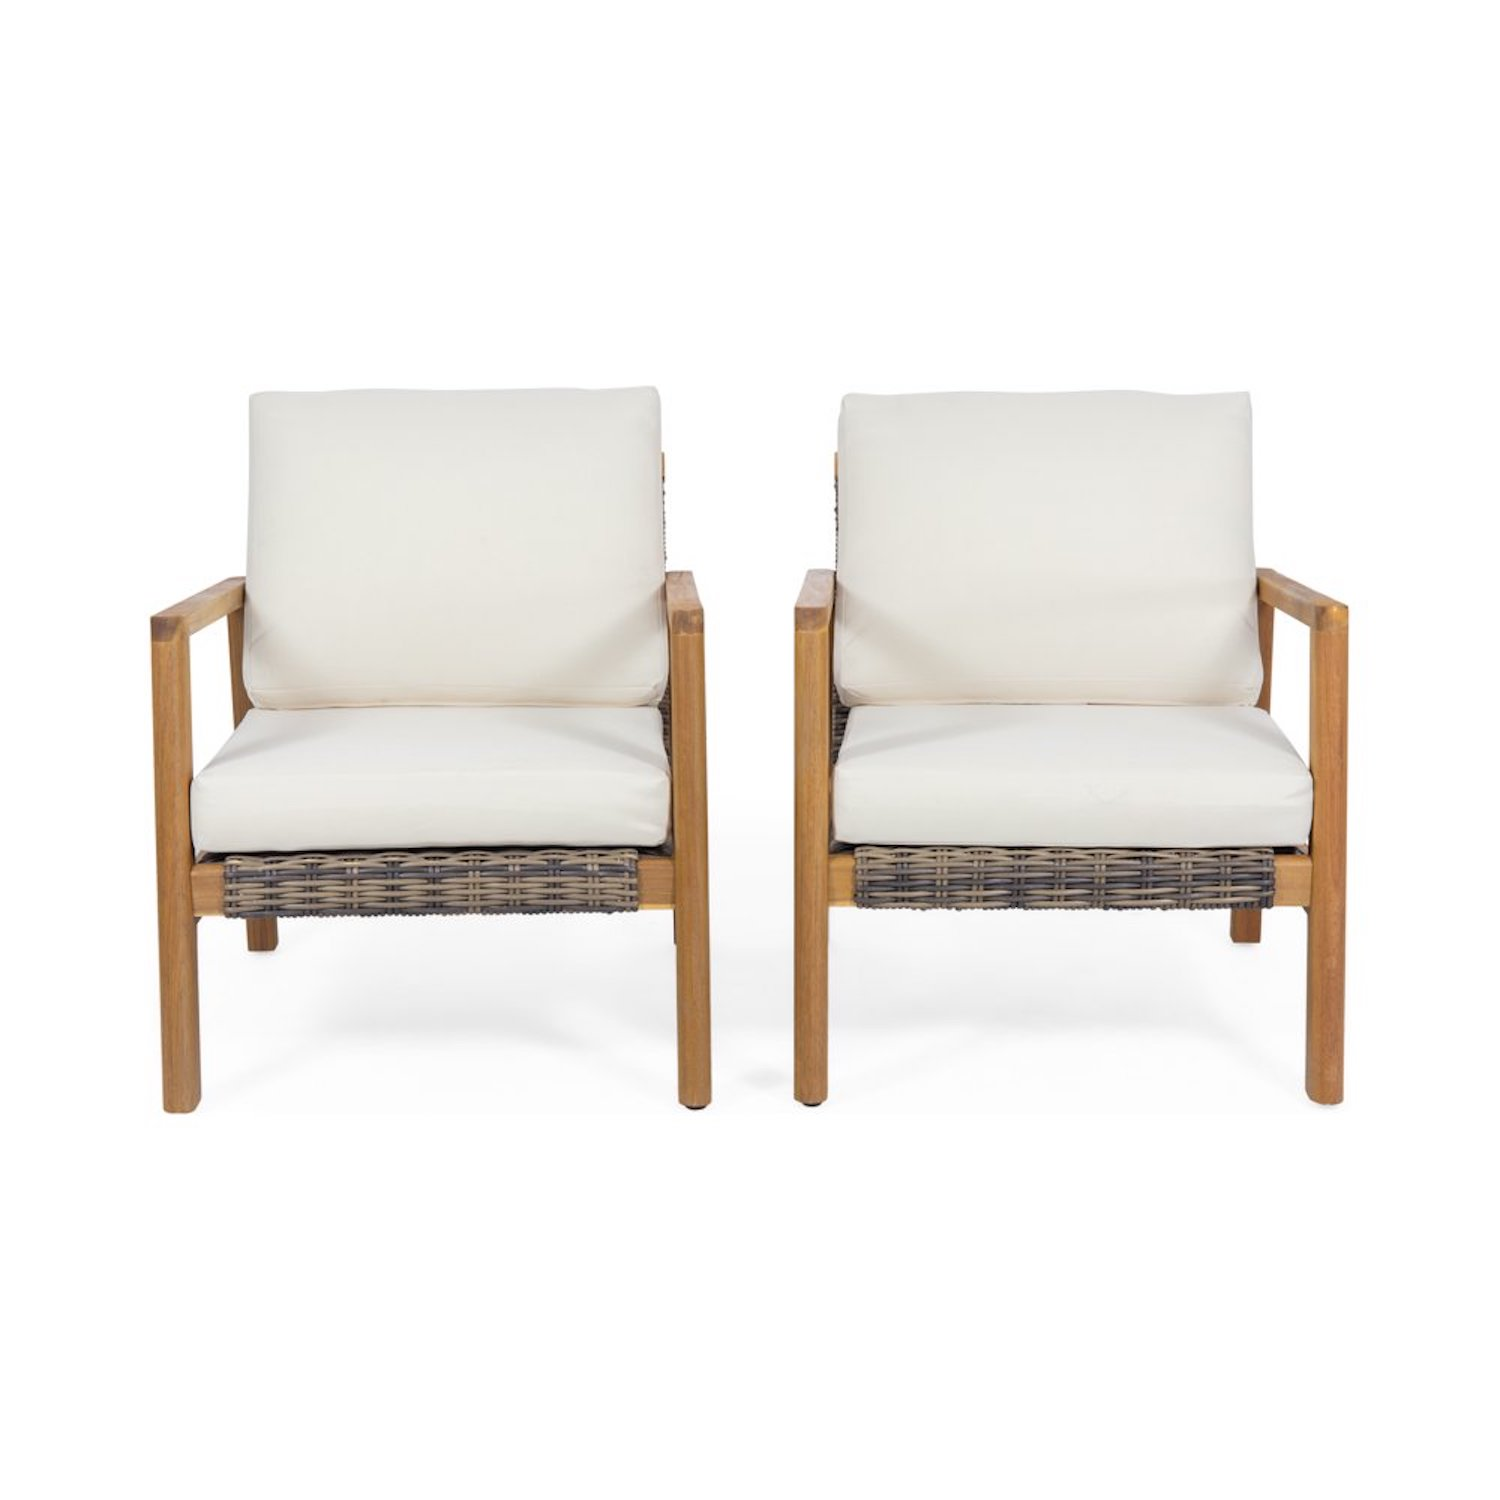 Outdoor Patio Wicker Accent Sets